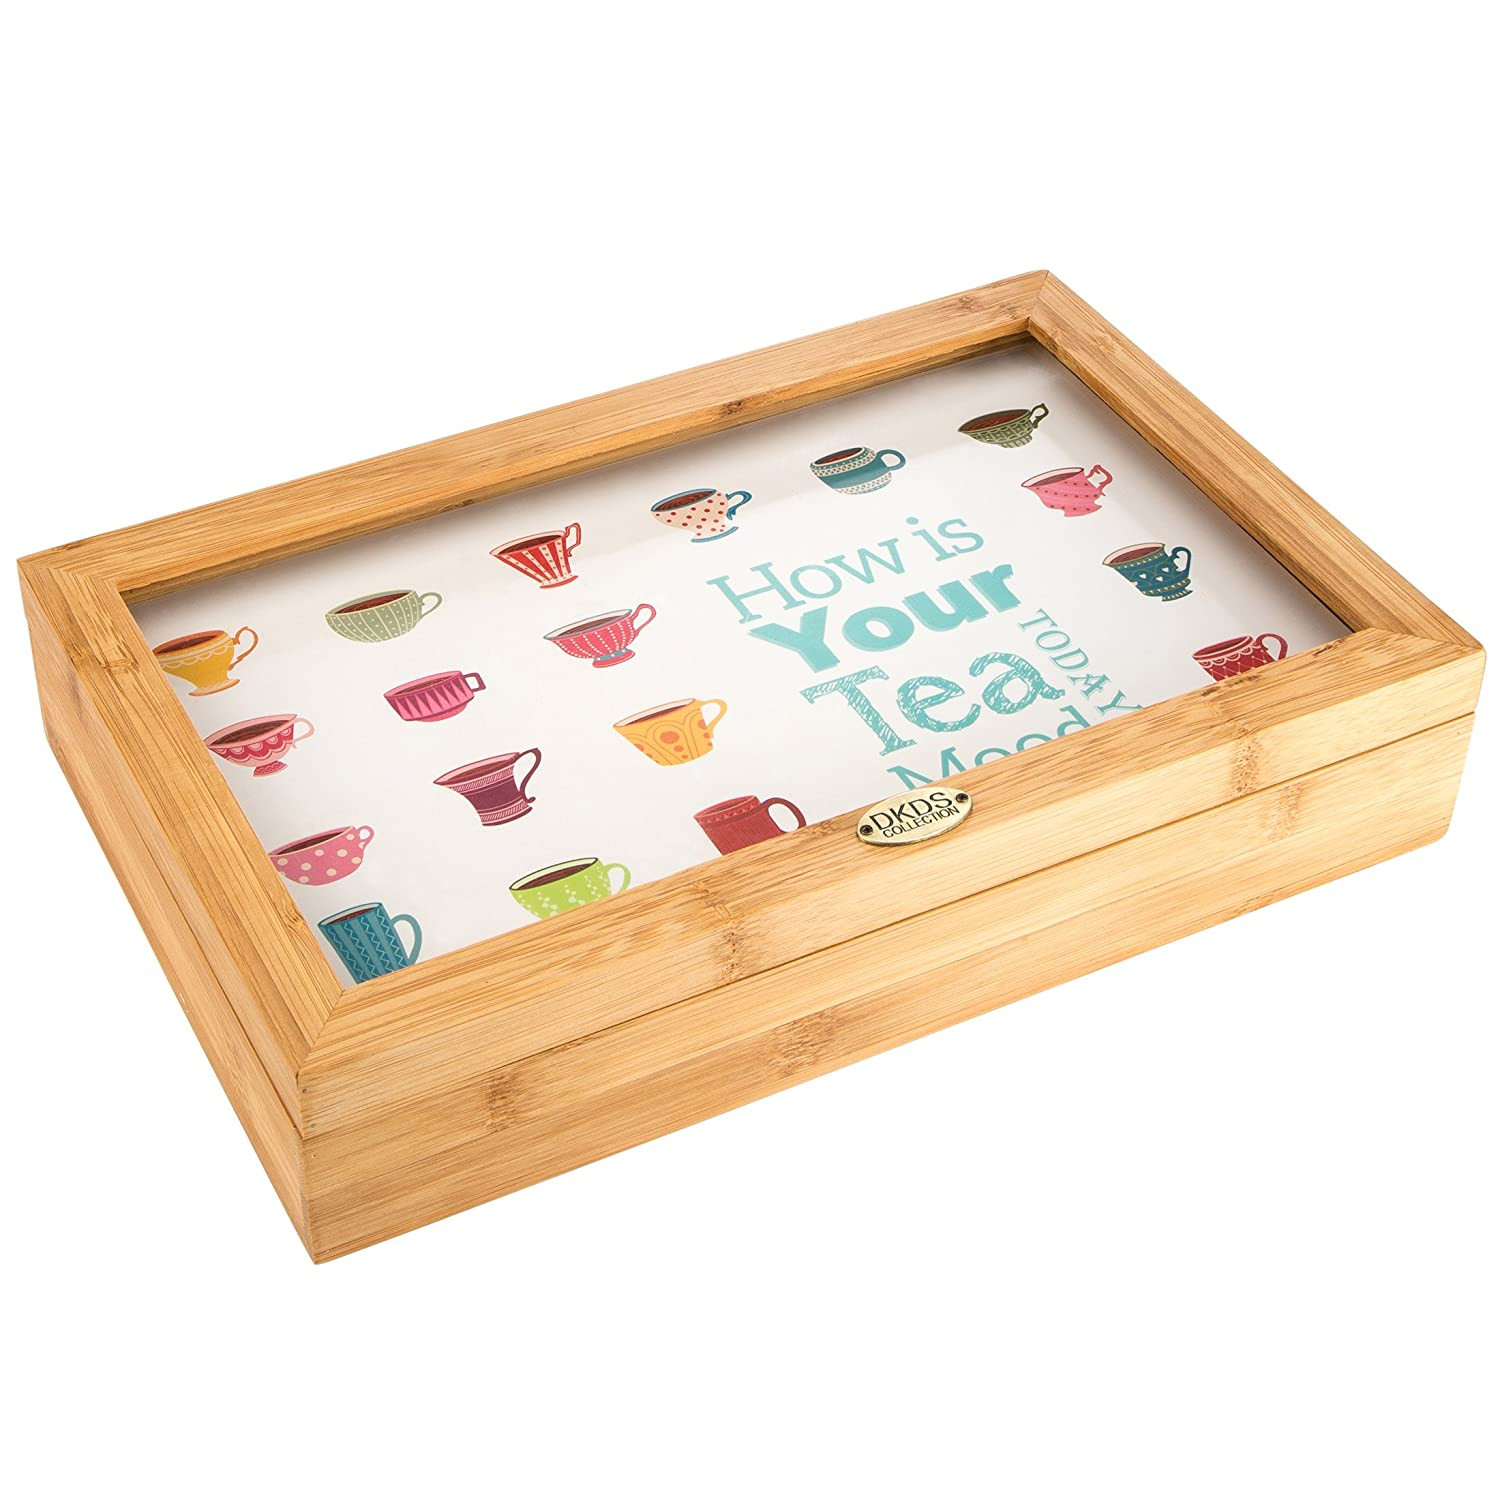 Levivo Tea Box / Teabag Box made of Bamboo with Window and 8 Compartments, Japanese style – for tea bags, wooden tea chest, stores up to 8 varieties of tea without losing aroma ASS200200000010